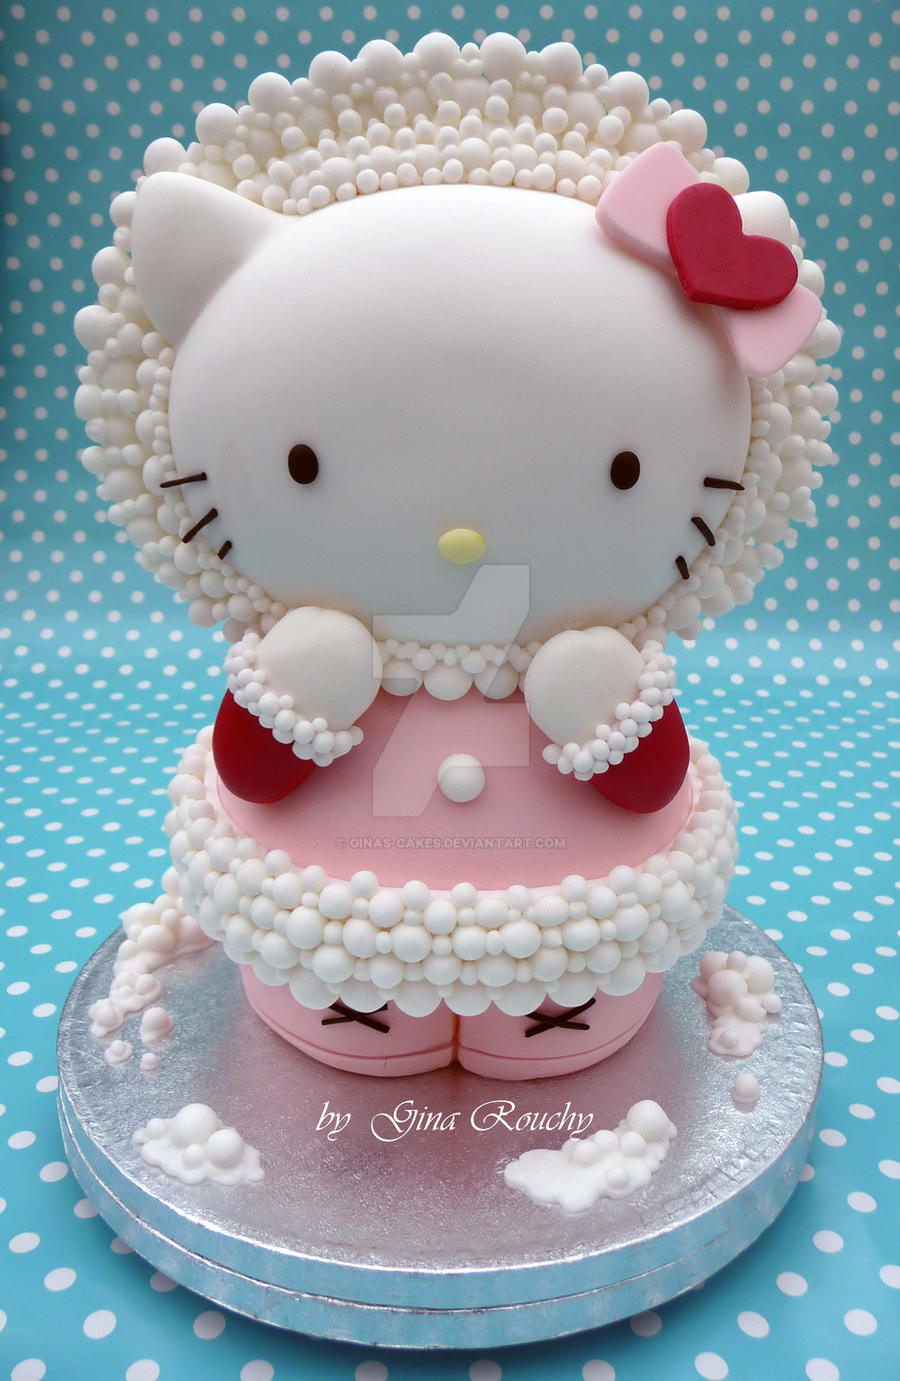 Hello Kitty Icing Cake Design : 3D Hello Kitty Cake by ginas-cakes on DeviantArt